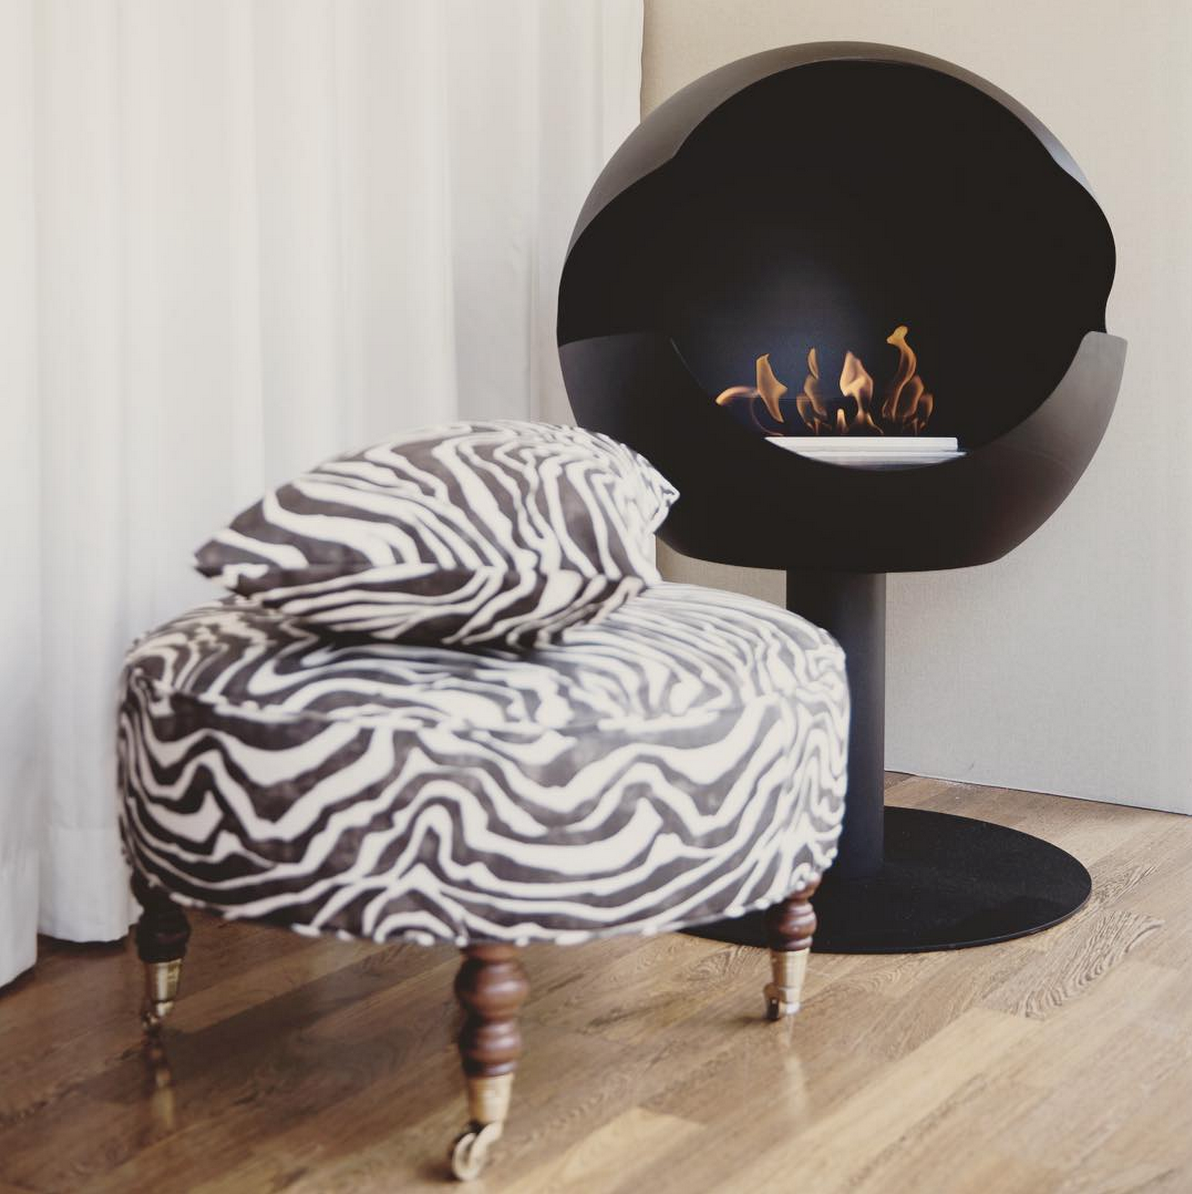 Black globe fireplace from Vauni